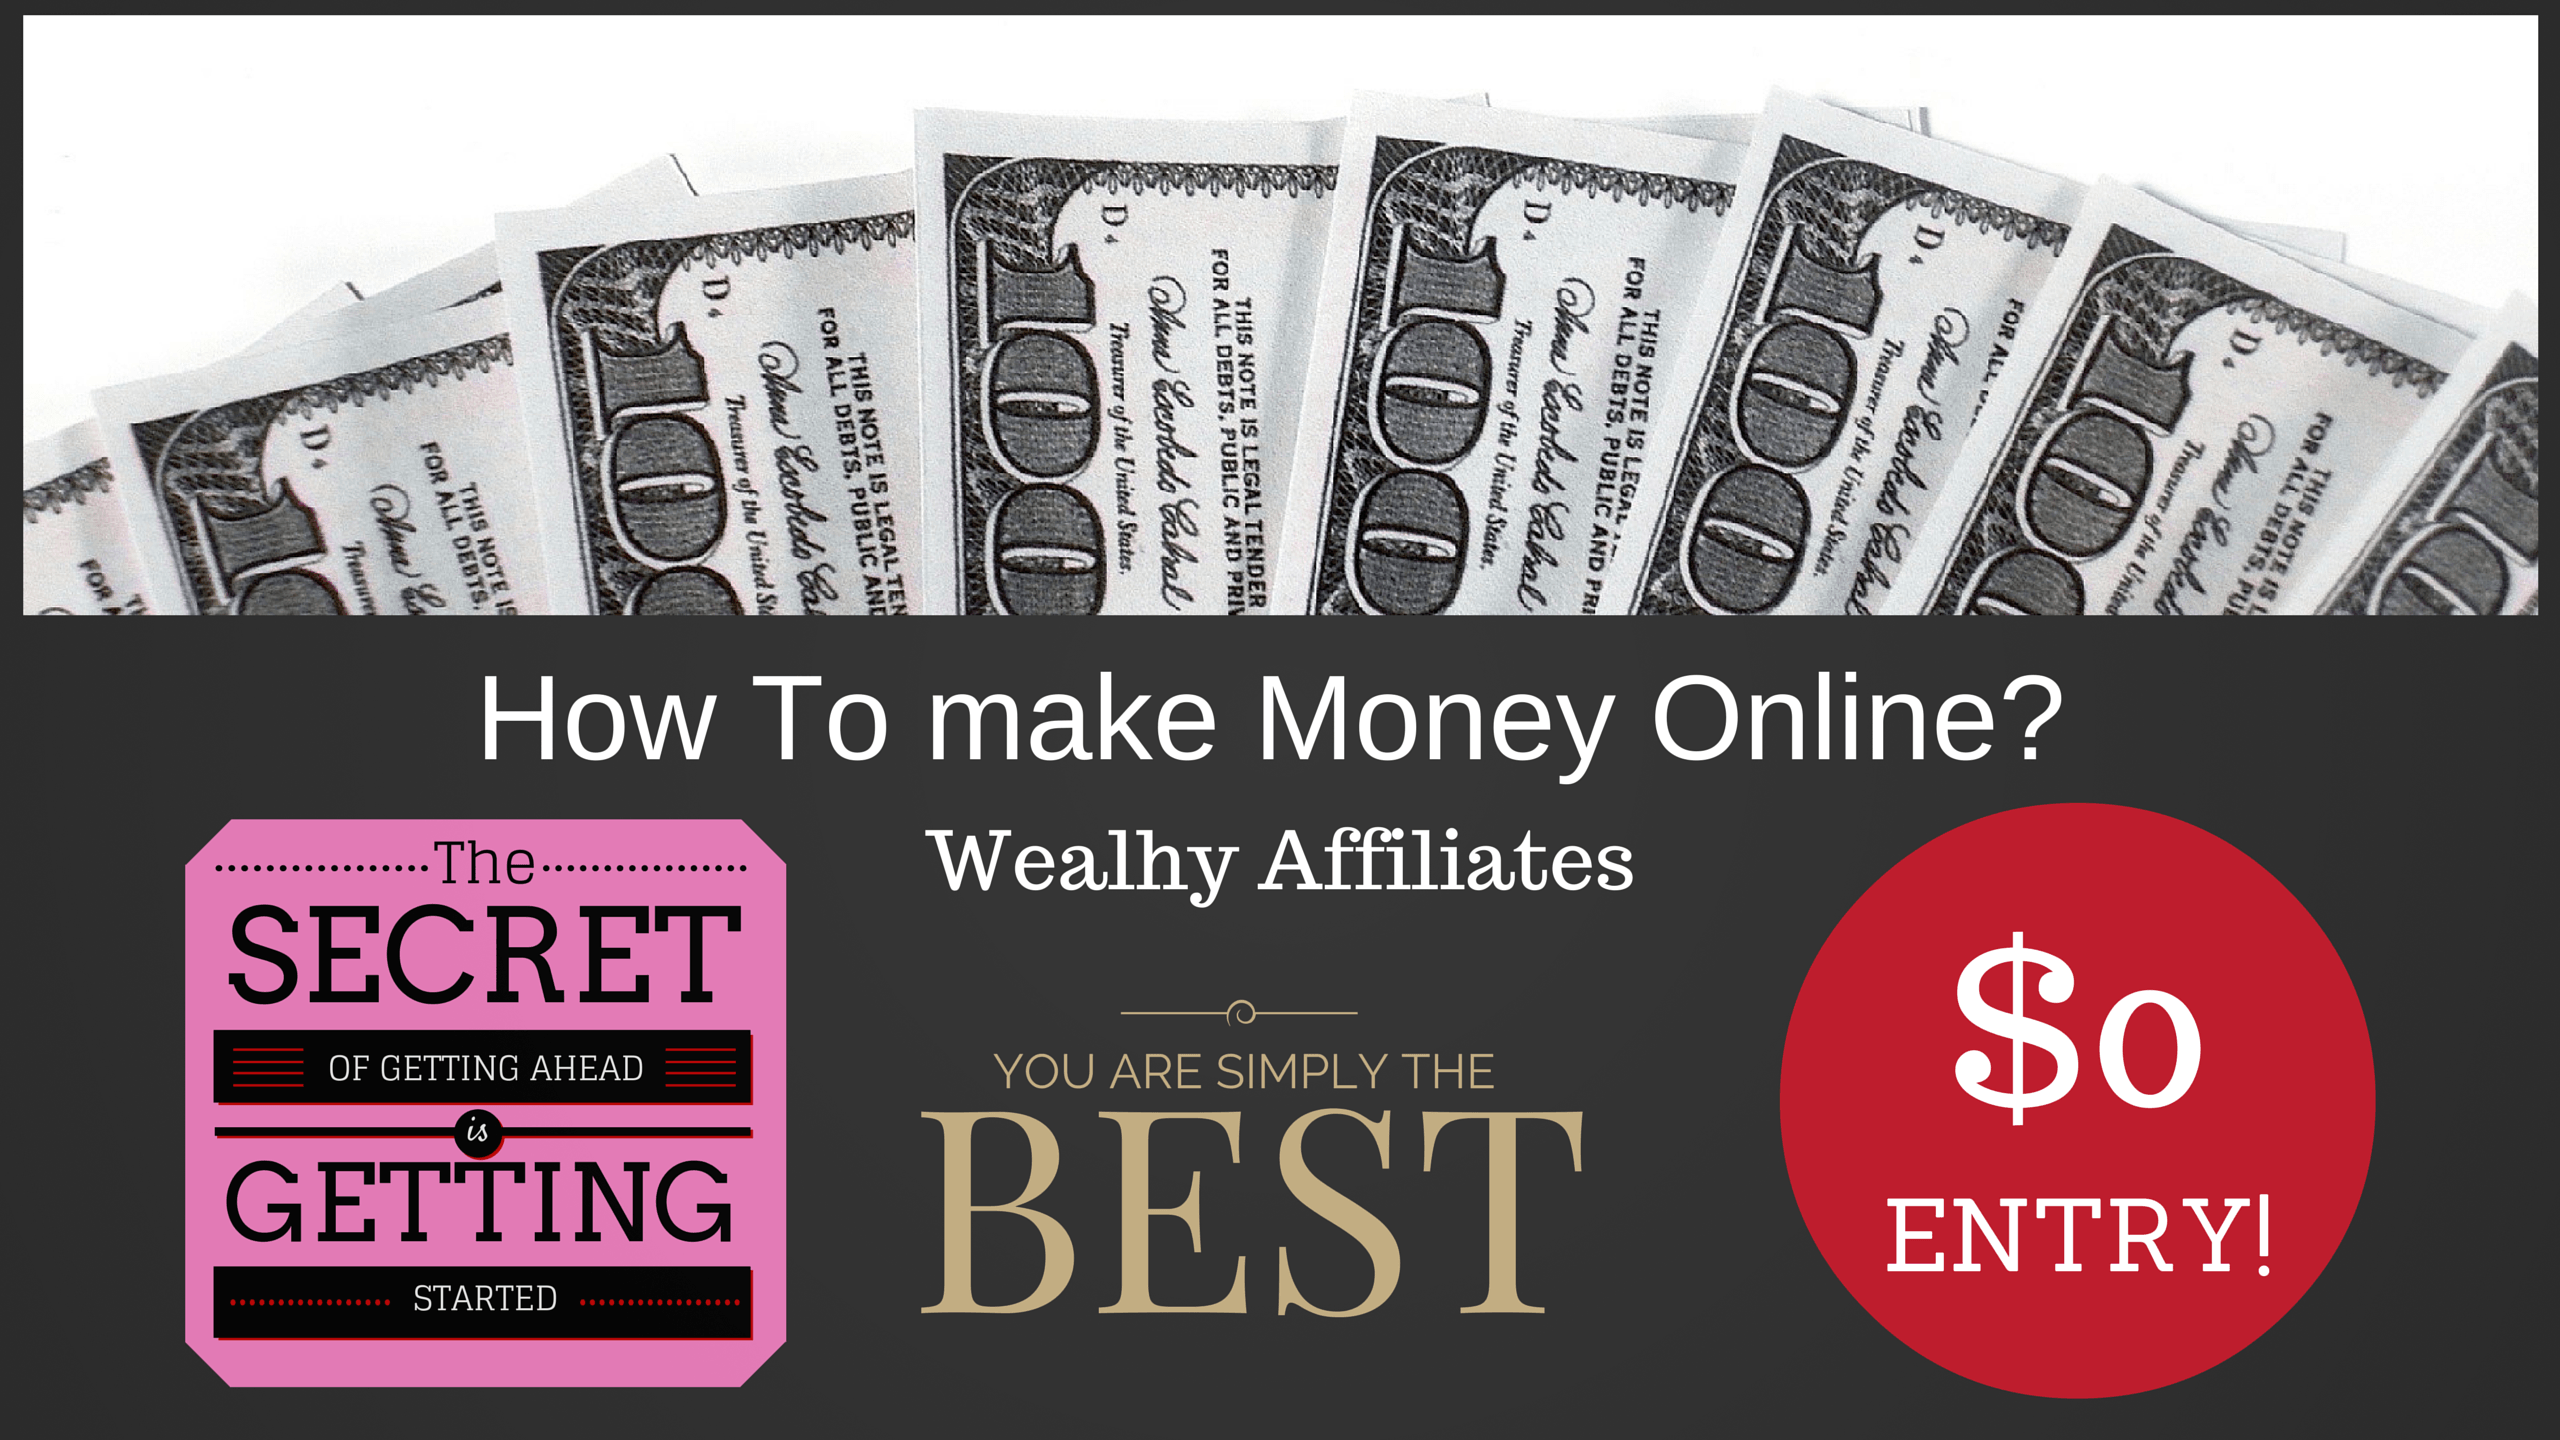 How To make Money Online  - WordPress Tools & Plugins That Help Your Site.